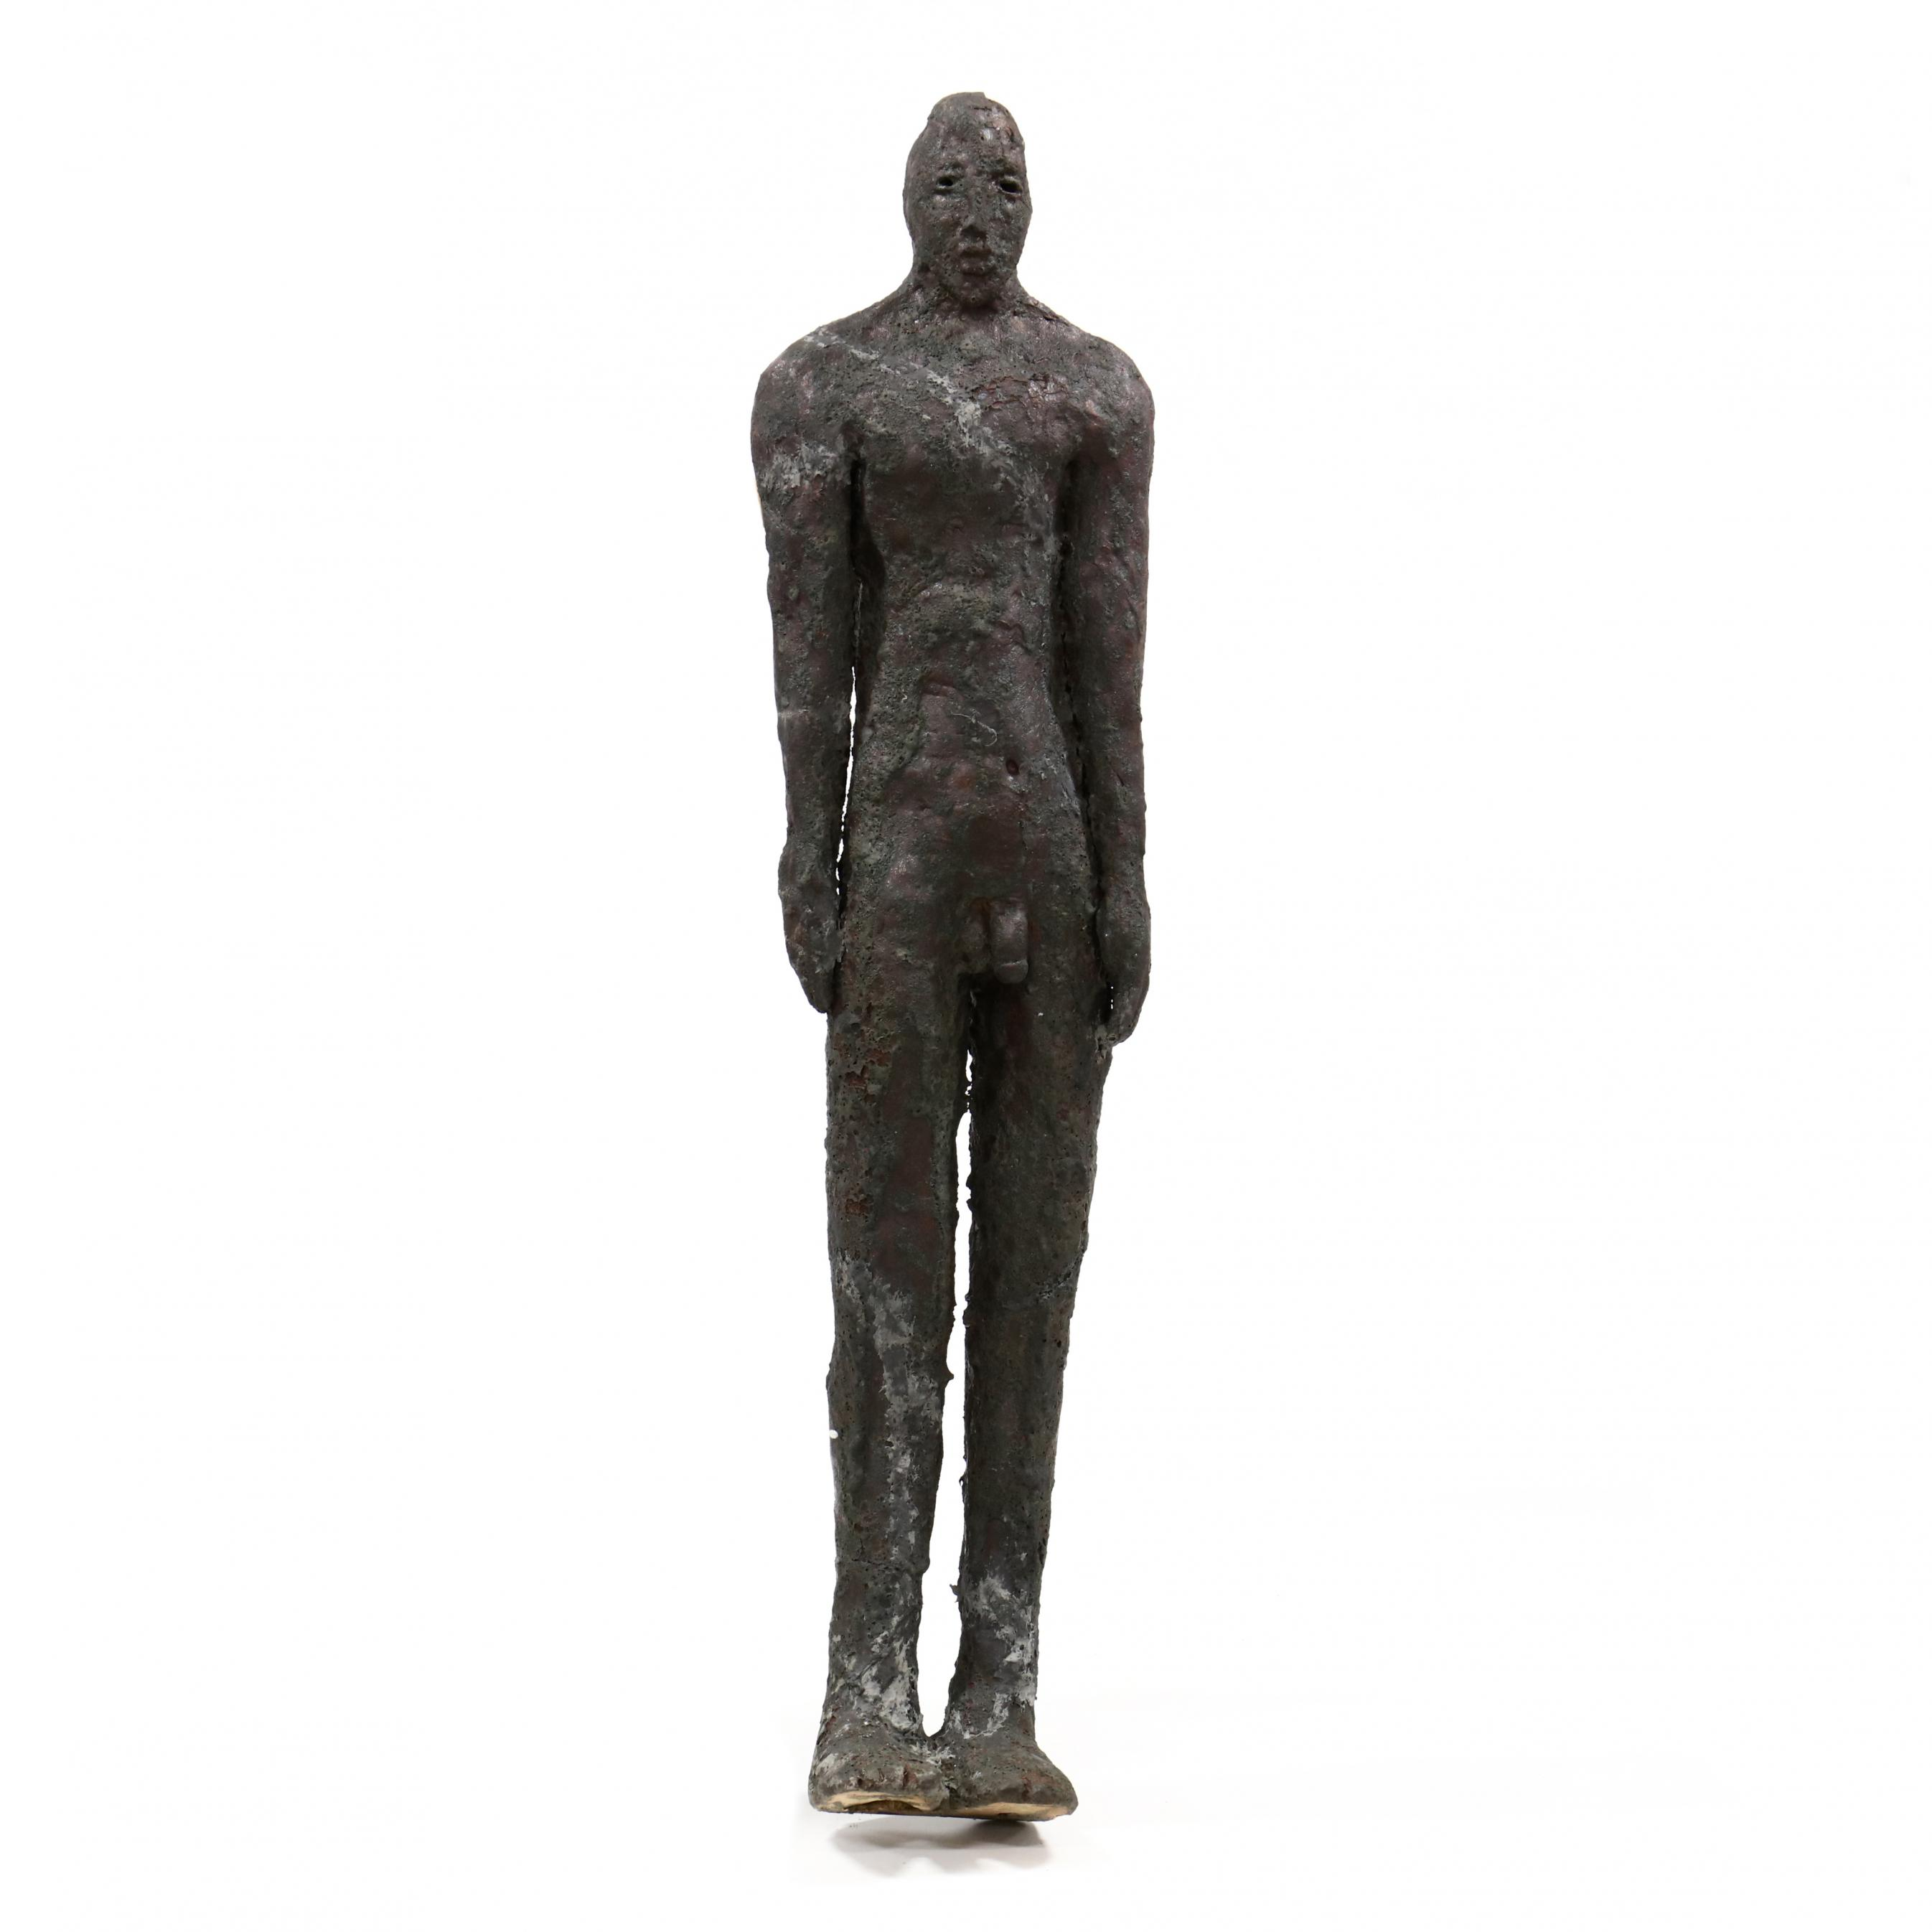 mark-chatterley-mi-life-size-male-sculpture